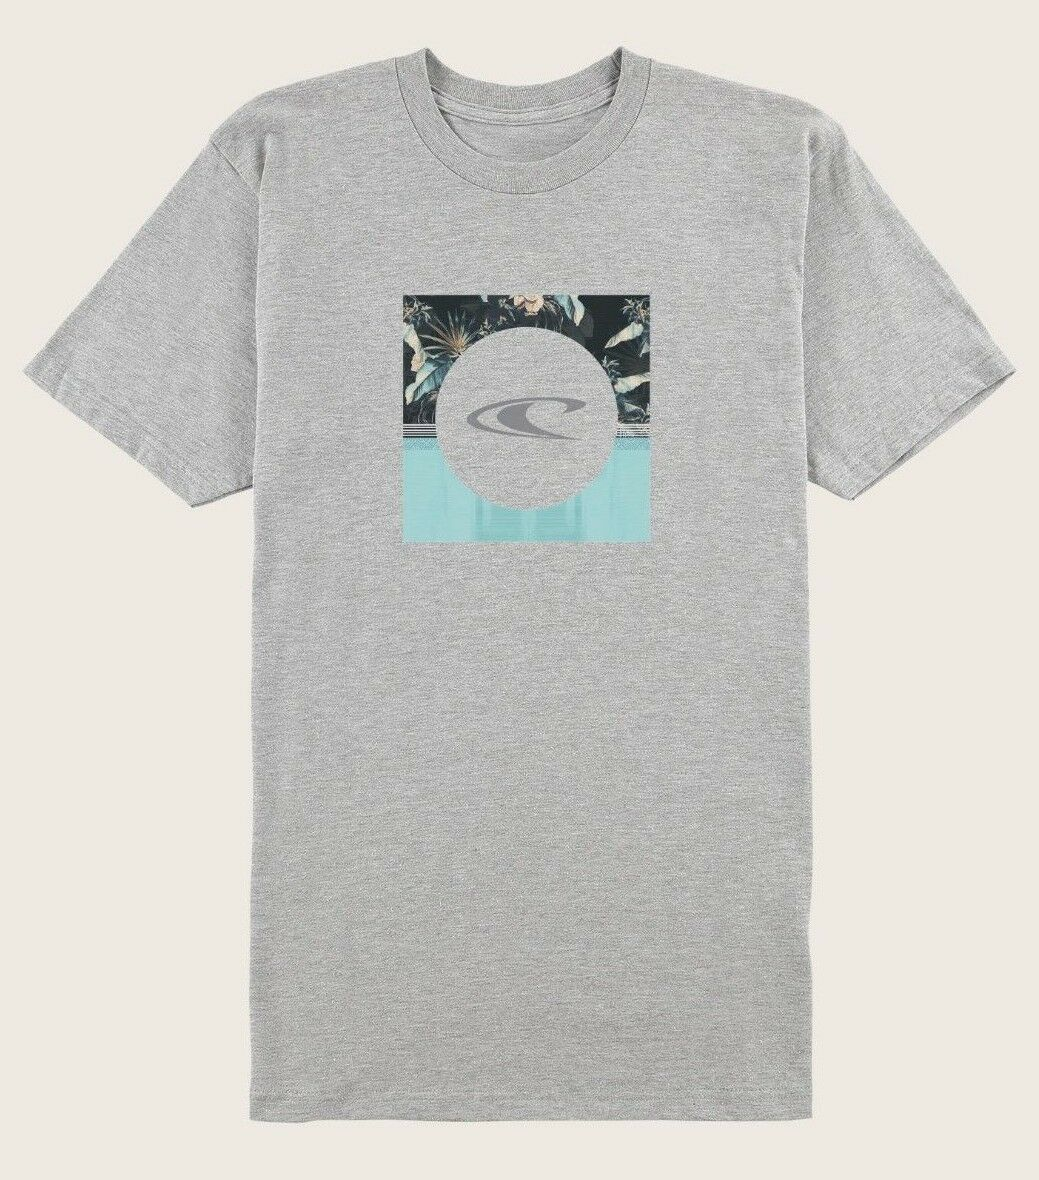 O'Neill Courtes Top Dog Hommes Manches Courtes O'Neill T-Shirt Taille M Gris Chiné Neuf 2018 0d0e94